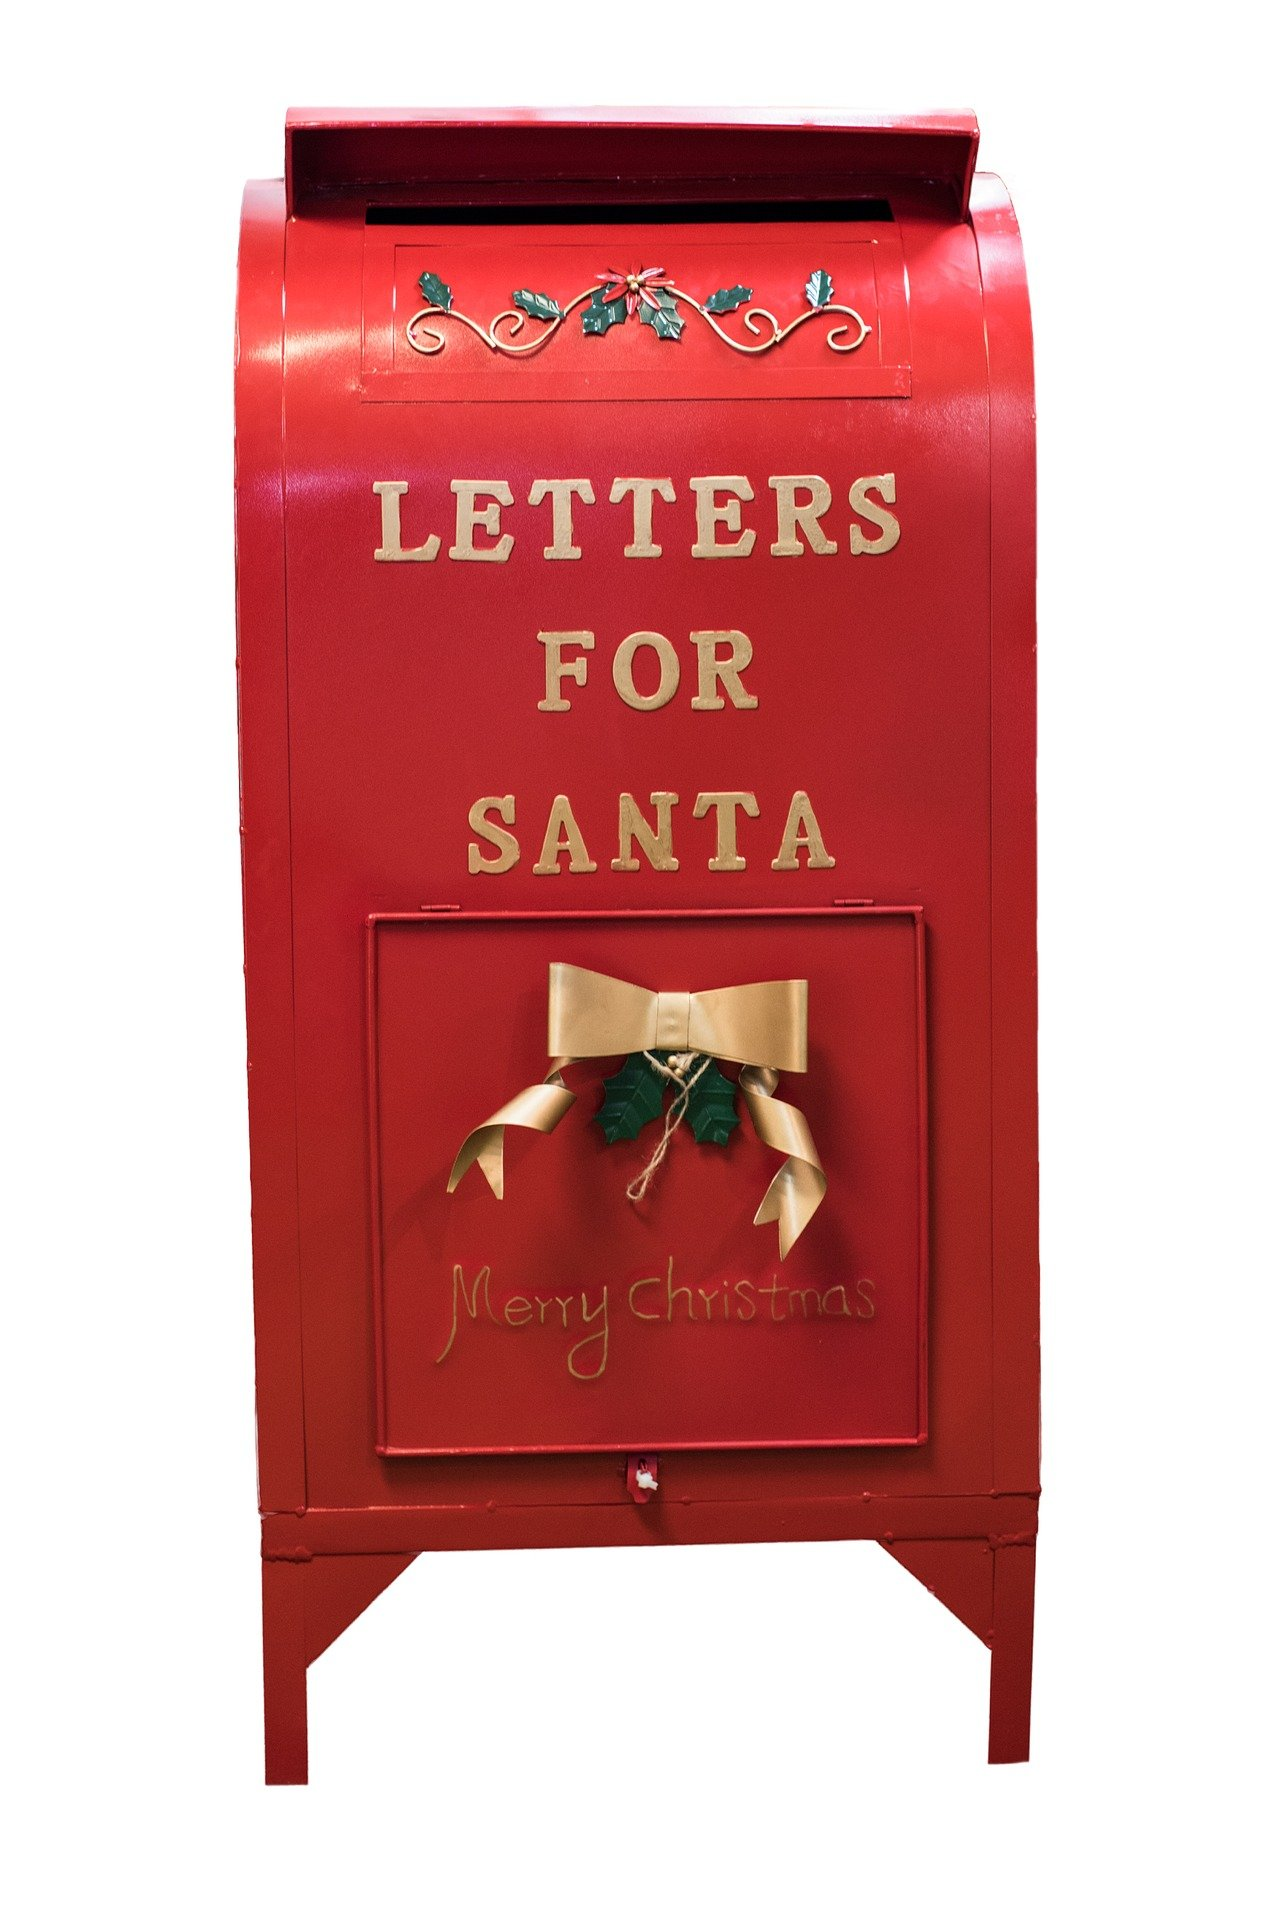 A post box that deliver mail to Santa Clause in the North Pole. | Source: Pixabay.